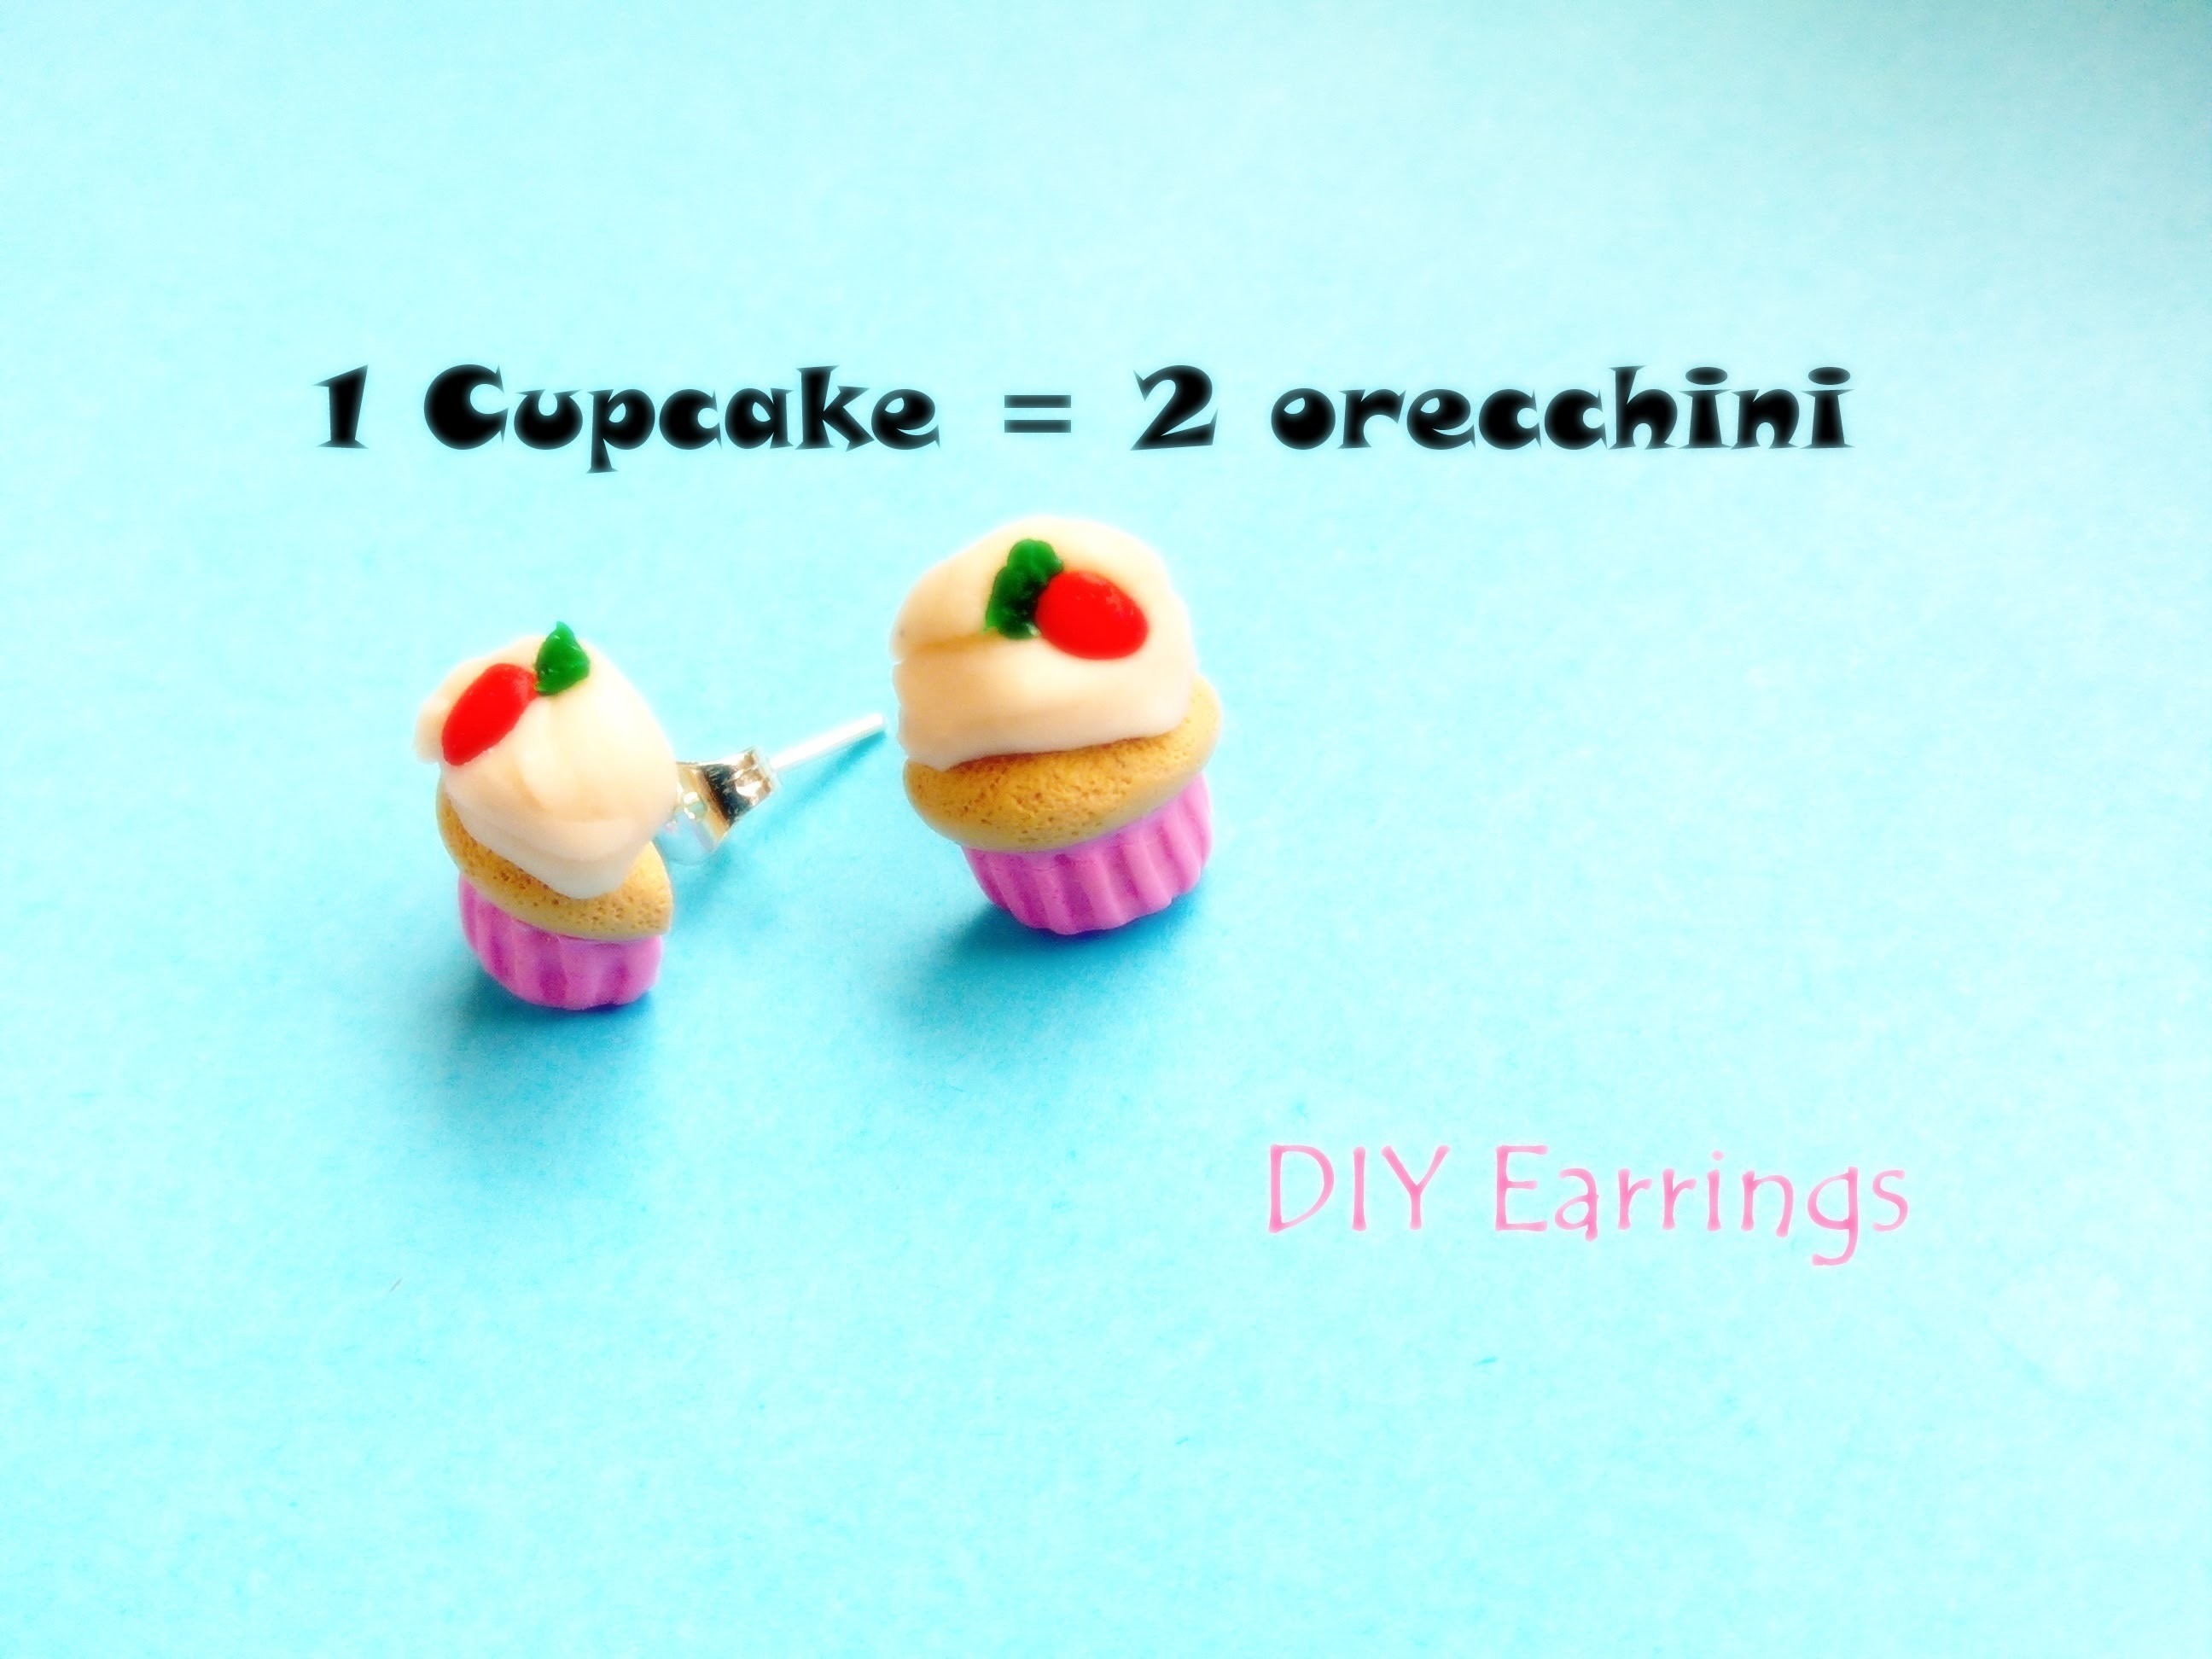 ♥ 1 Cupcake = 2 Orecchini. 1 Cupcake = 2 Earrings ~ Polymer Clay Tutorial